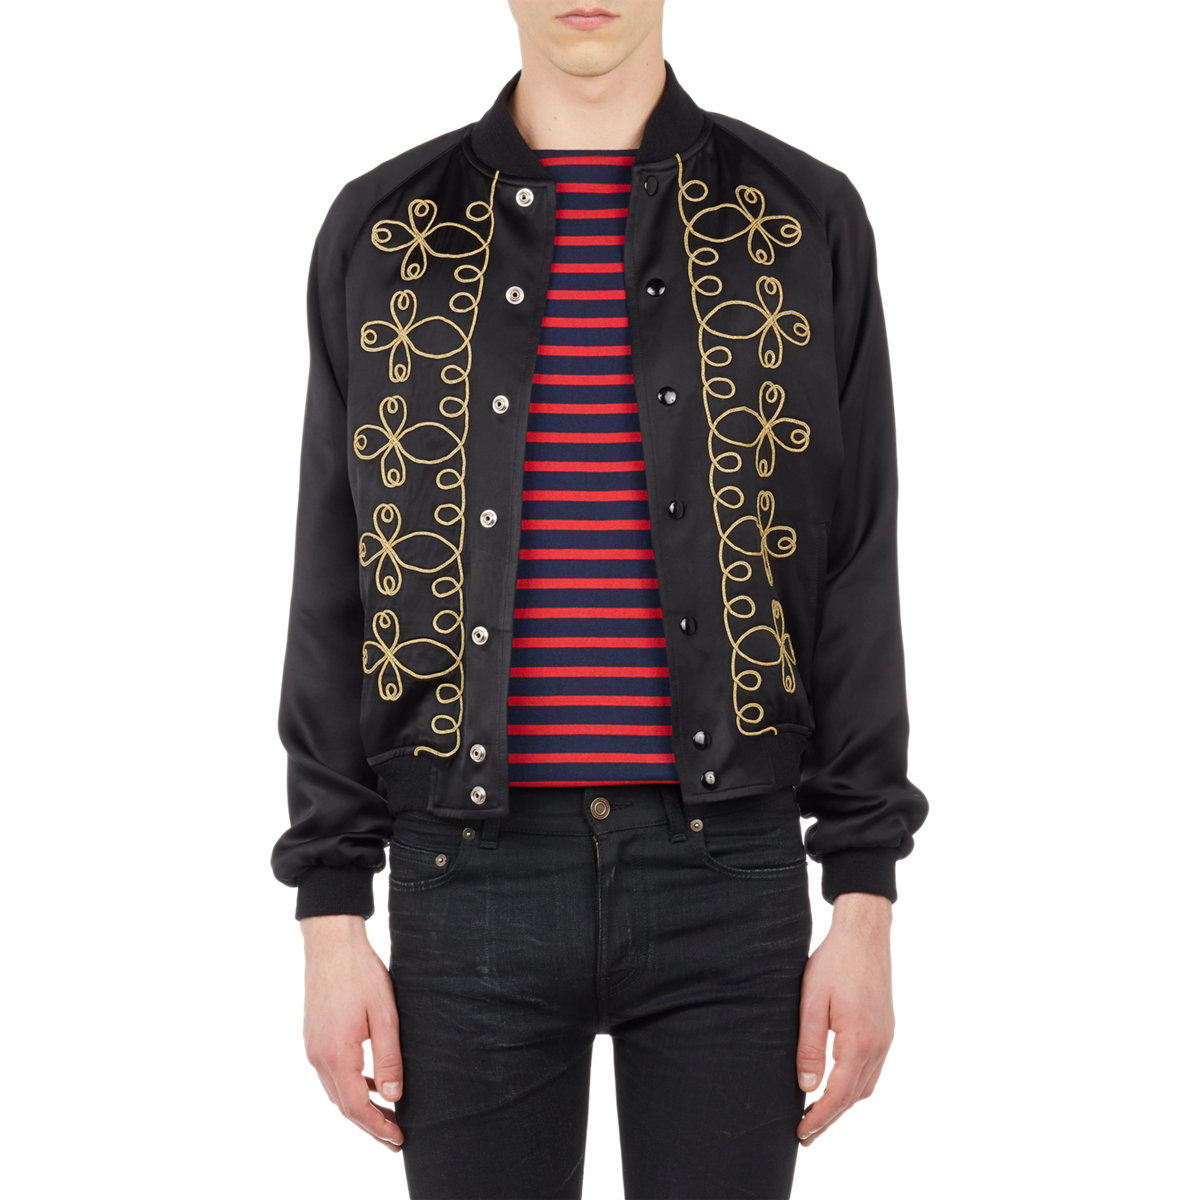 Saint laurent embroidered satin varsity jacket in black